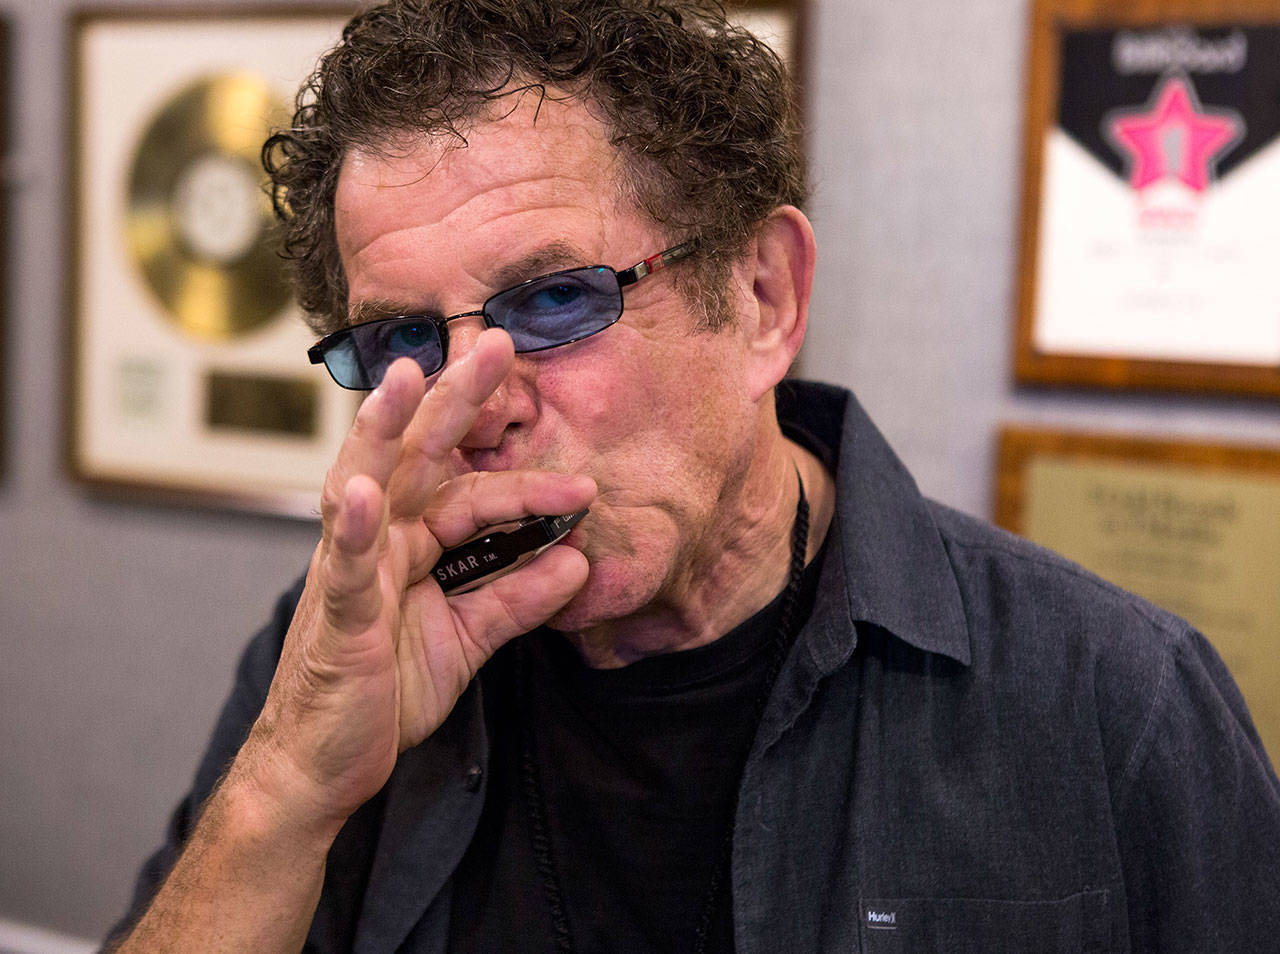 Lee Oskar plays his harmonica at his Everett home in September. The musician, best known for playing in the 1970s funk-rock fusion band War, will perform at a benefit concert for the Historic Everett Theatre on March 6. (Olivia Vanni / Herald file)